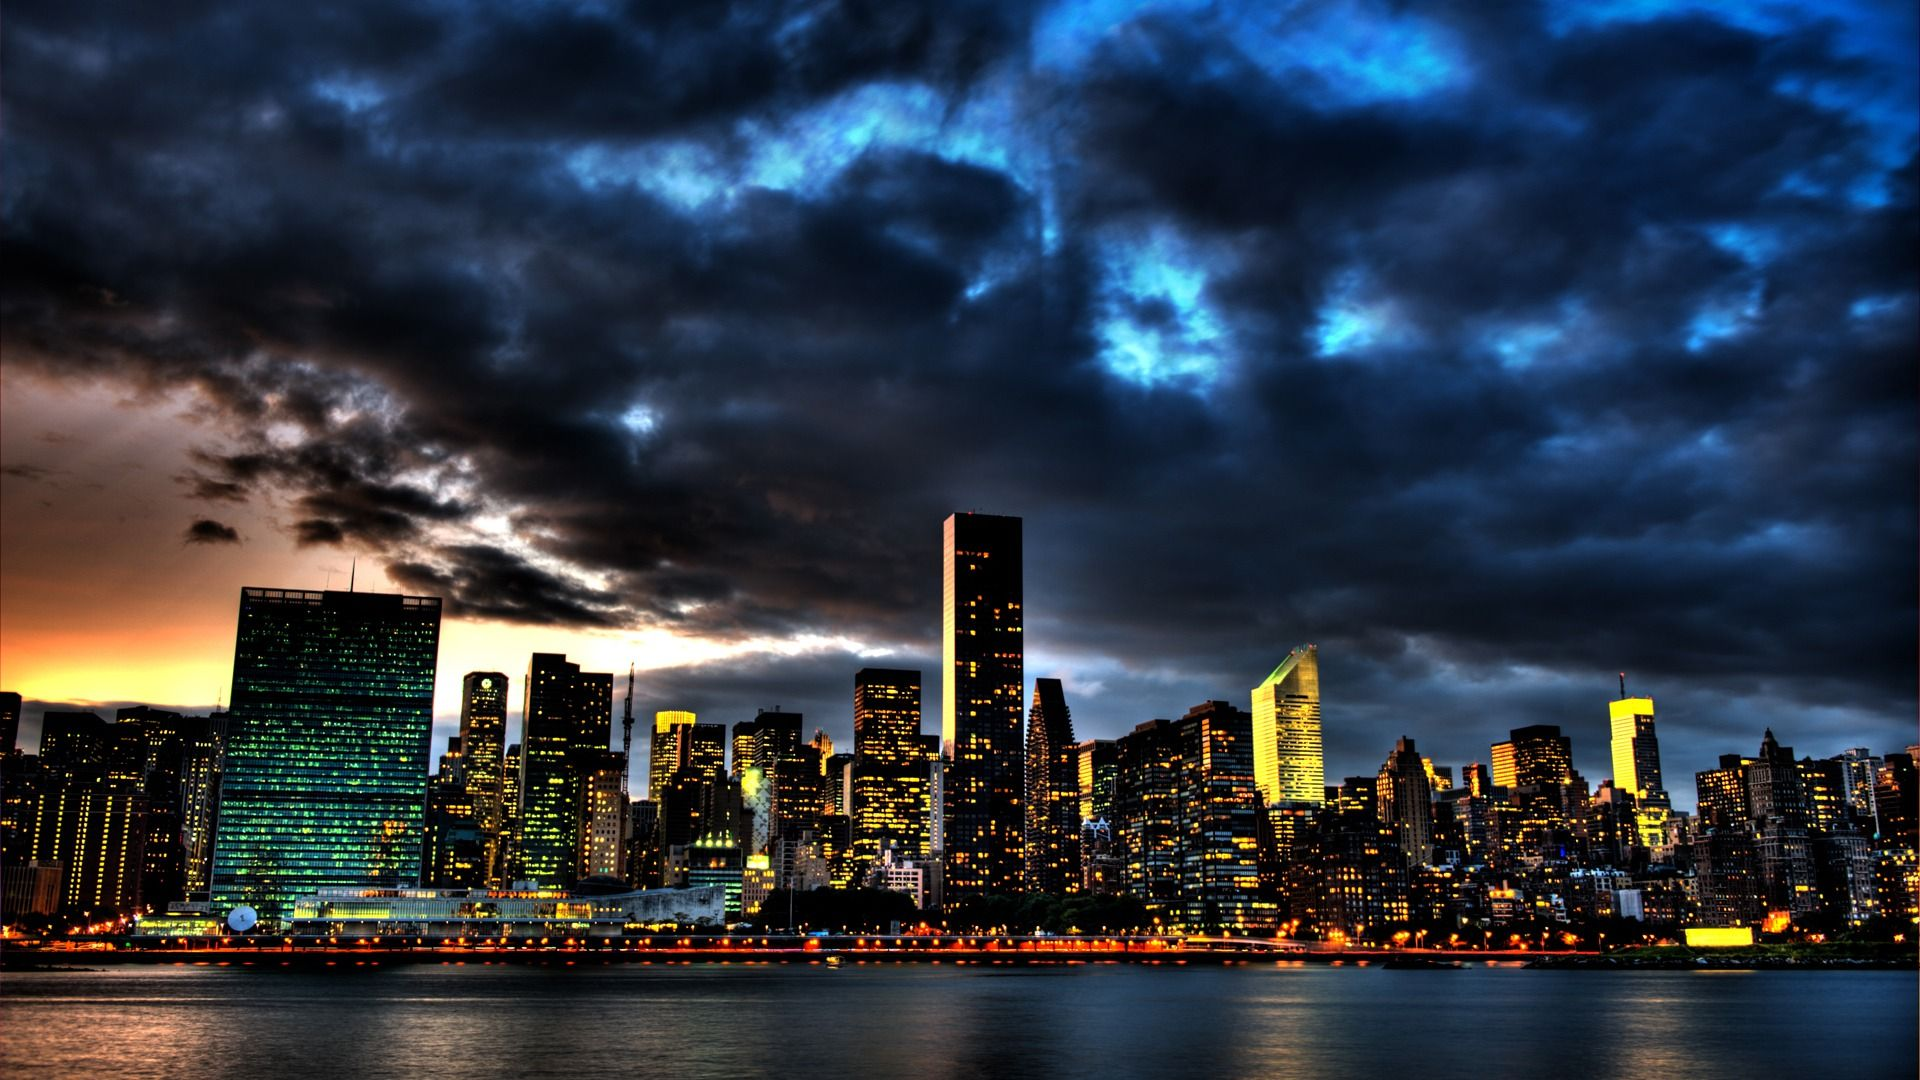 New York City Skyline 1080p Wallpaper City Hd Wallpapers Source